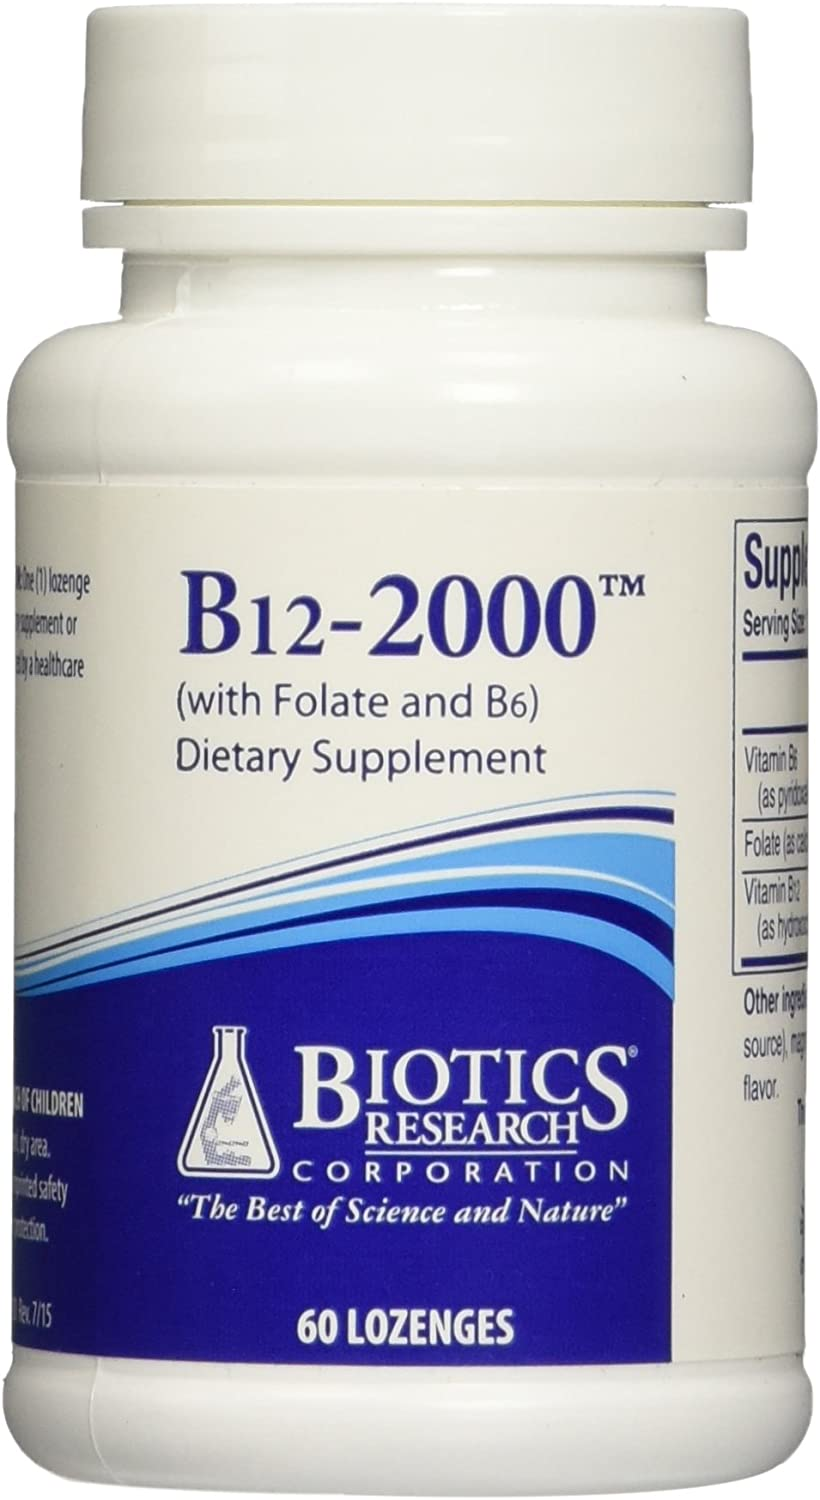 Biotics Research – B12-2000 with Folic Acid and B6 – 60 Lozenges